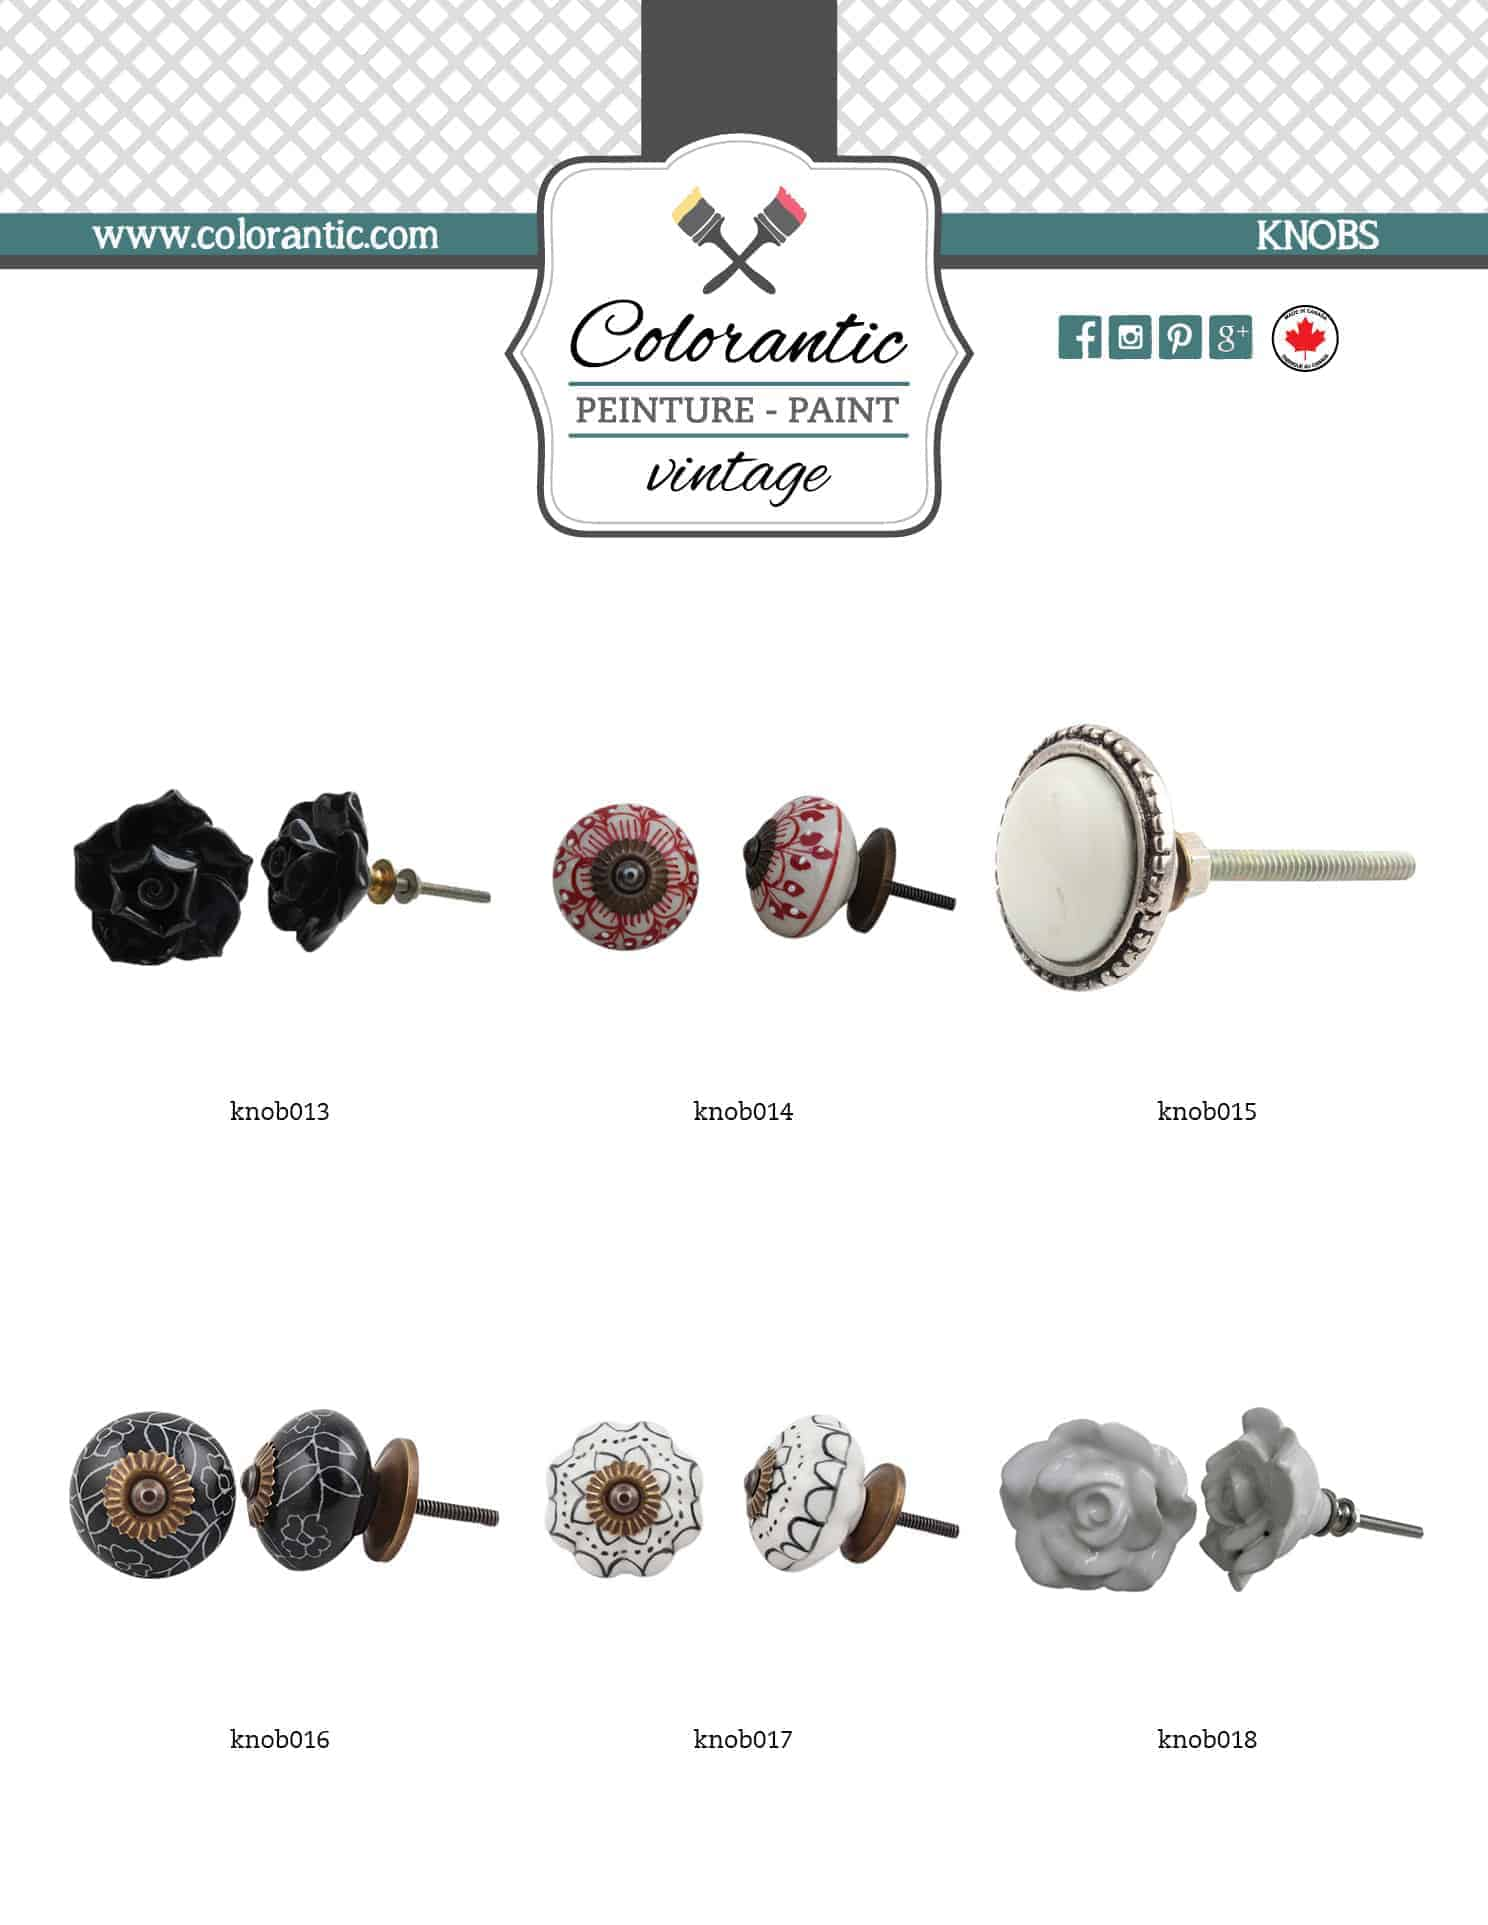 Collection of handles and knobs available on request!